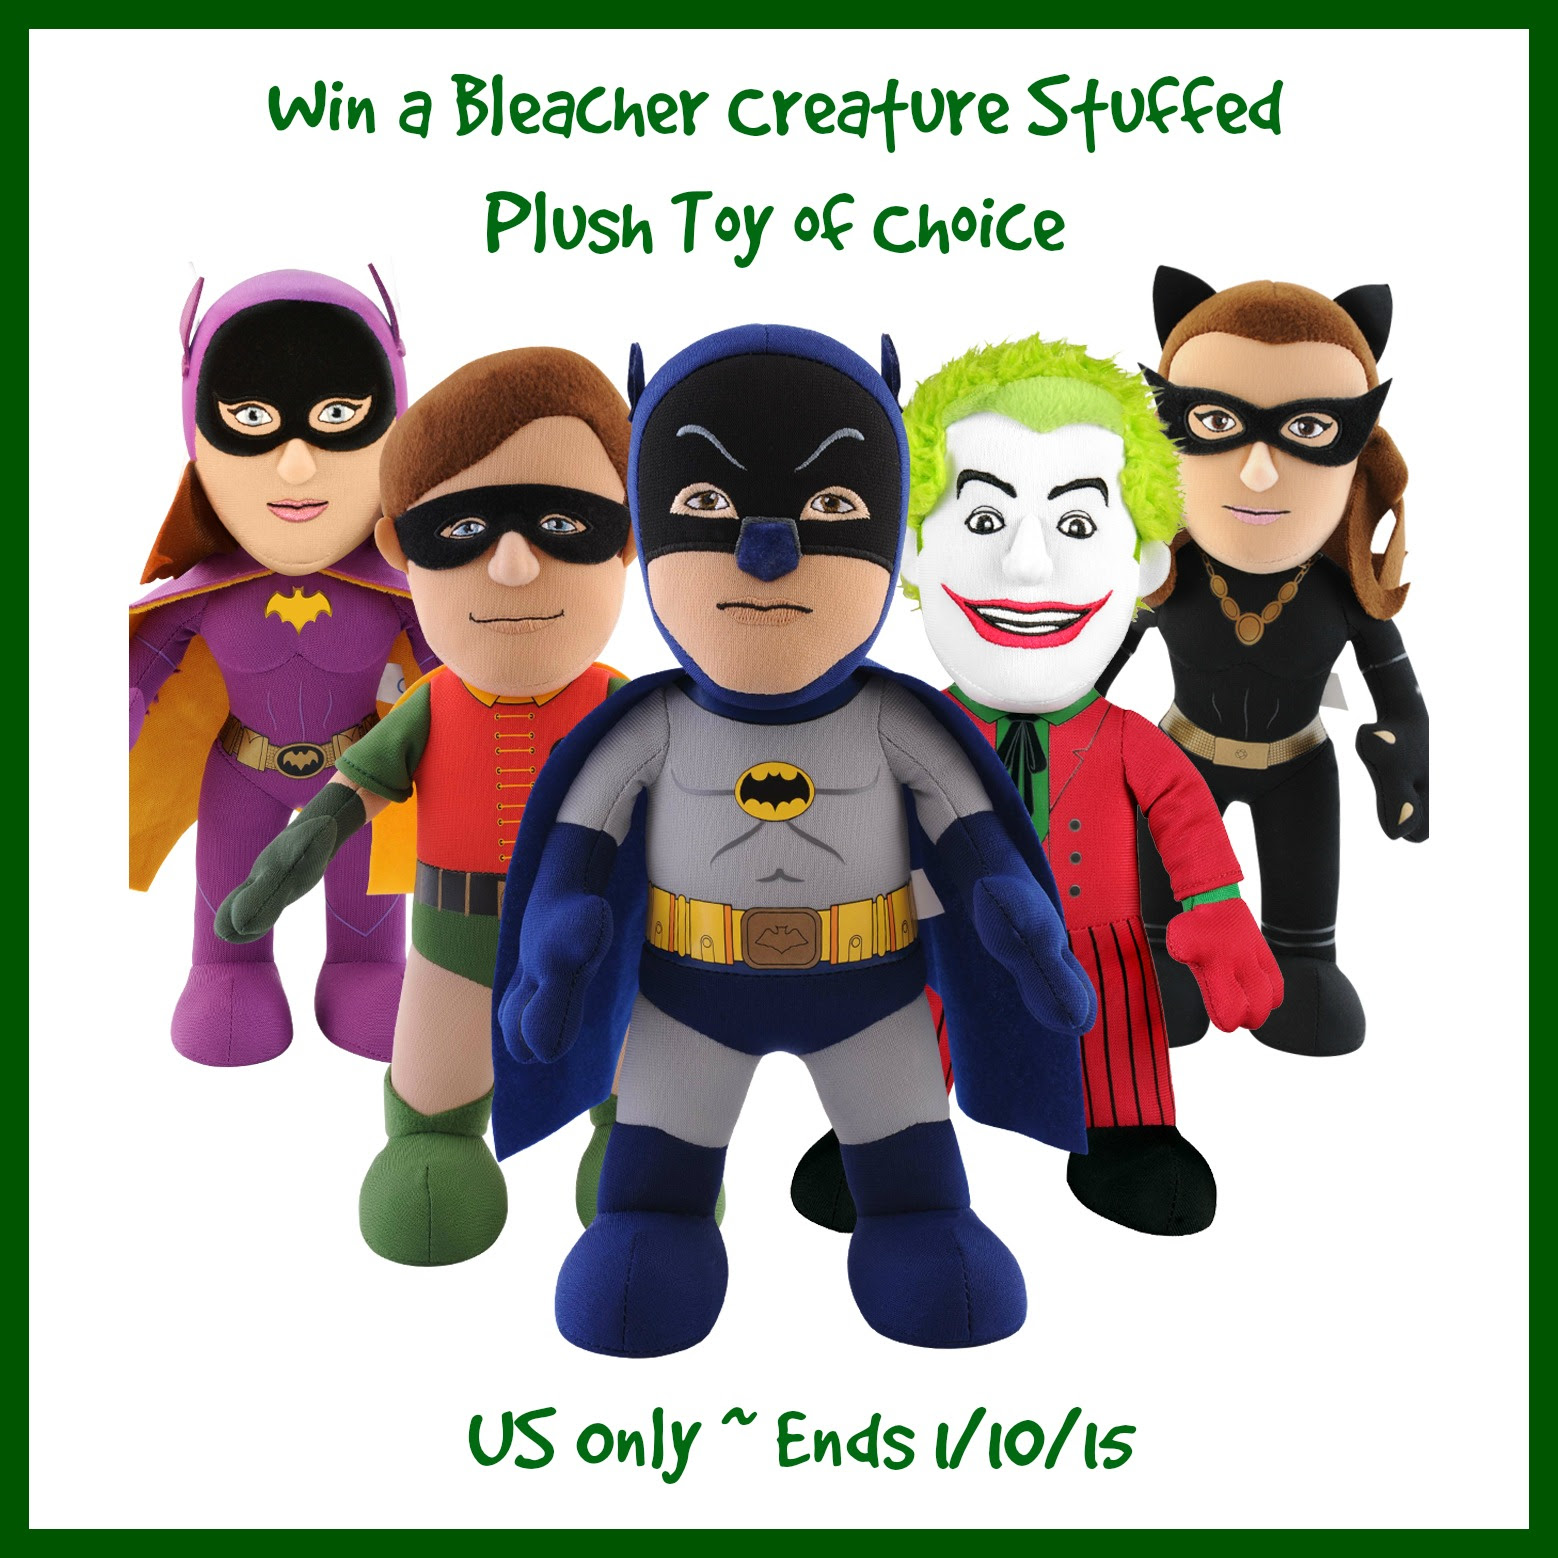 Enter the Bleacher Creature Giveaway. Ends 1/10.